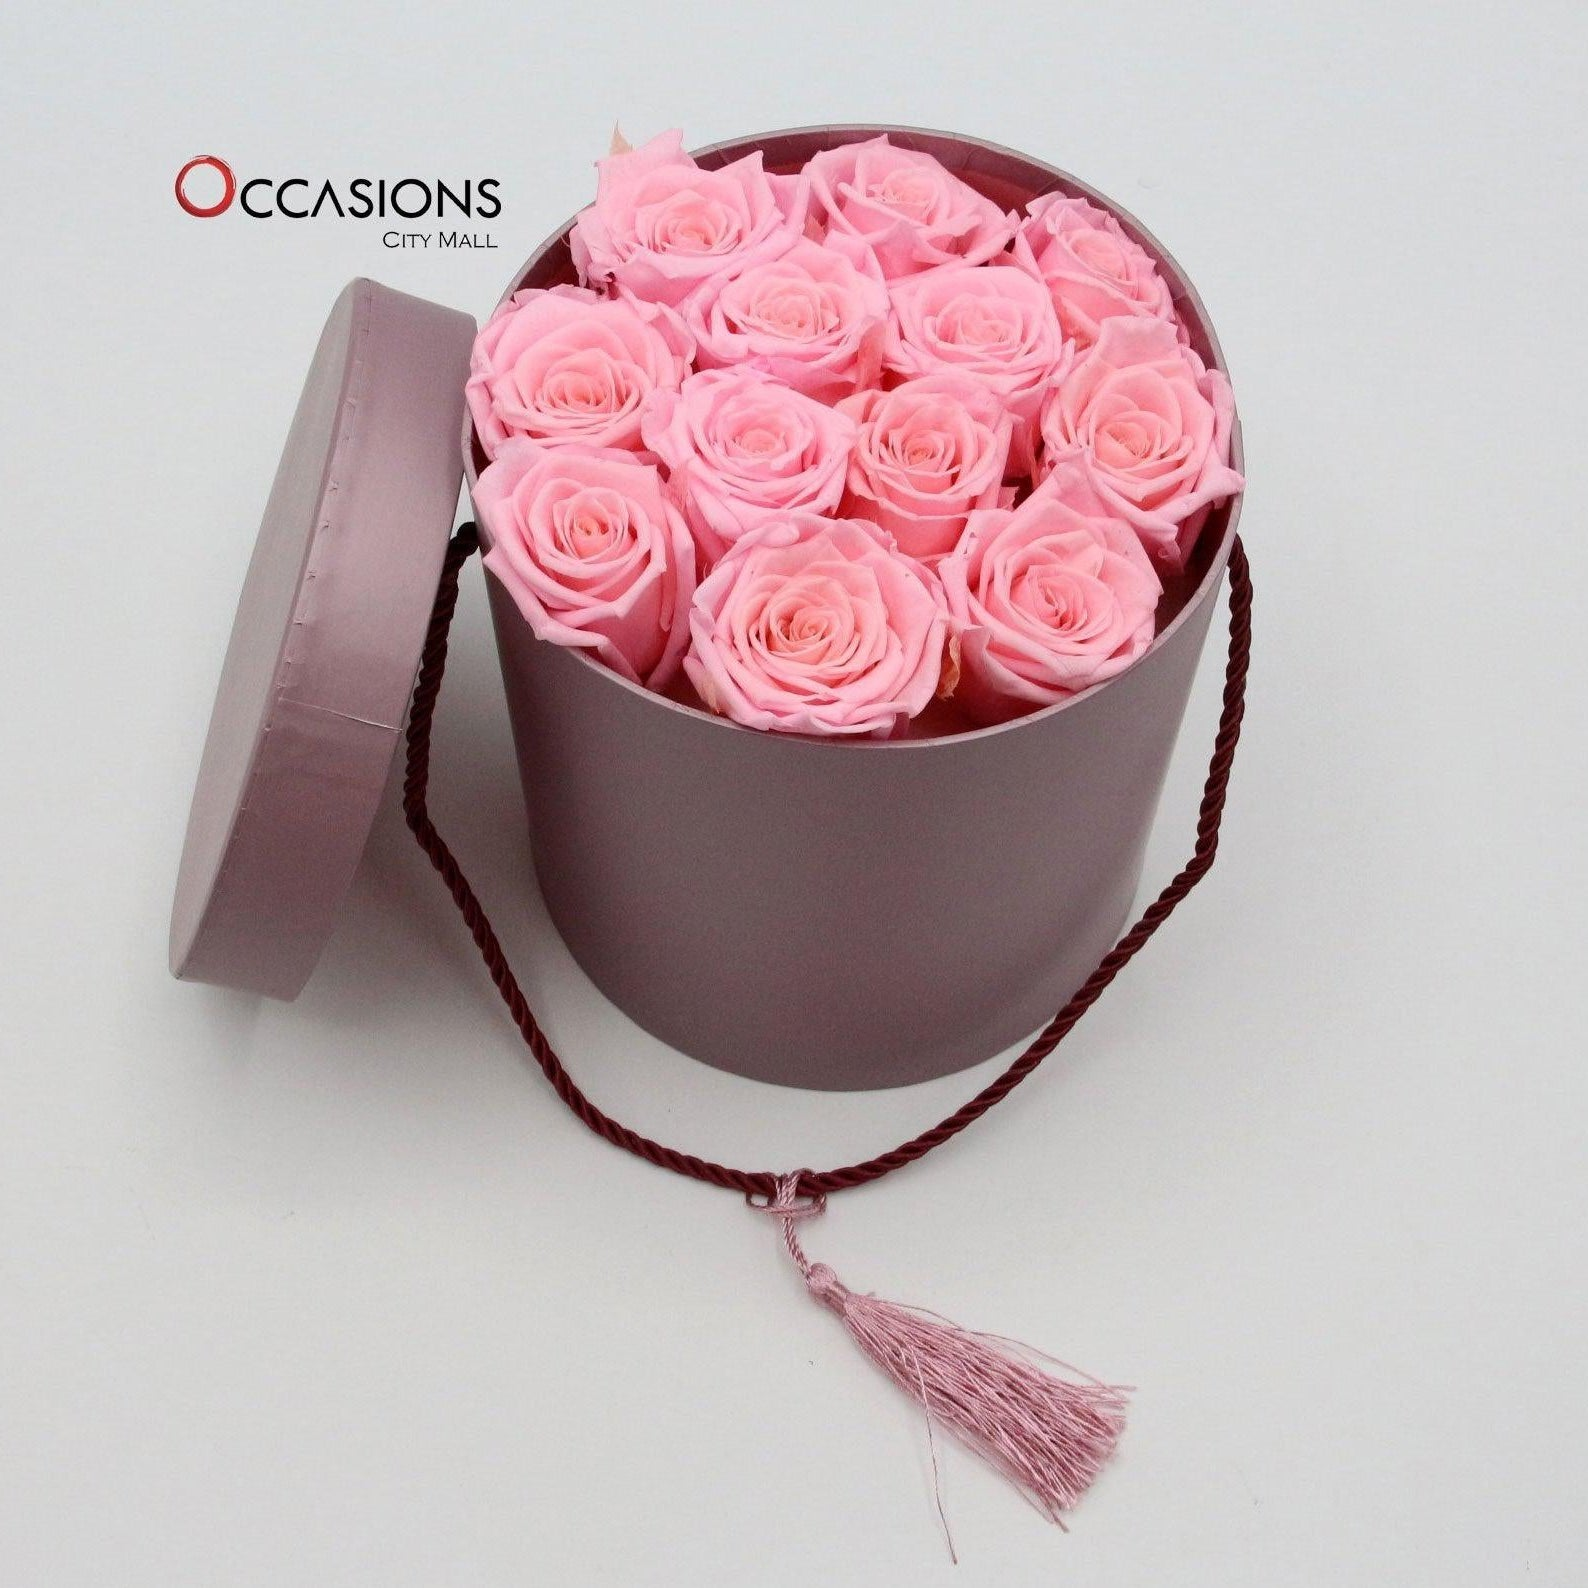 Purple Simplicity with Roses Flowerssend_delivery_Amman_Jordan